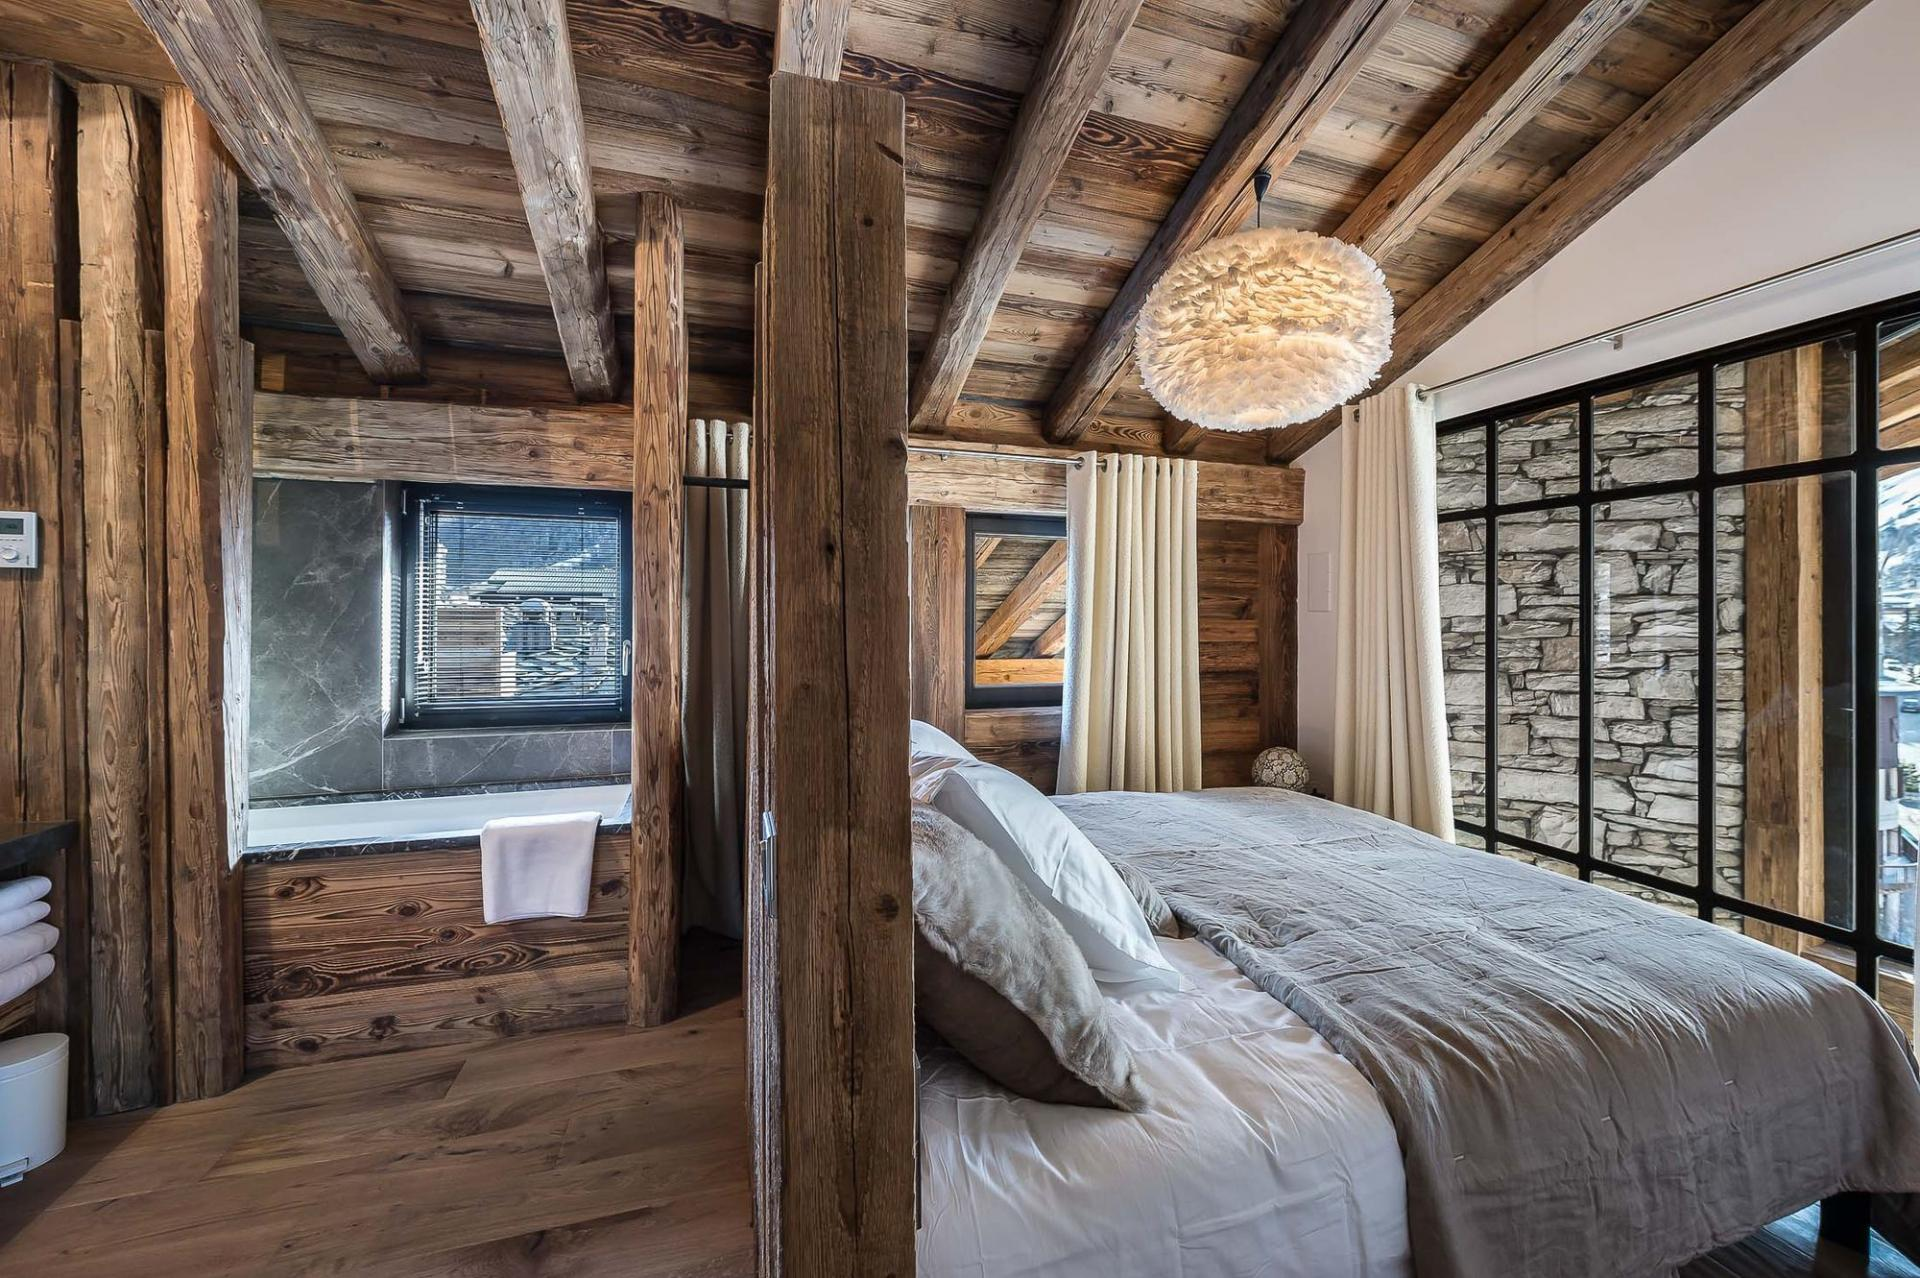 ONE OF THE BEDROOMS WITH VIEWS ON THE MOUNTAINS